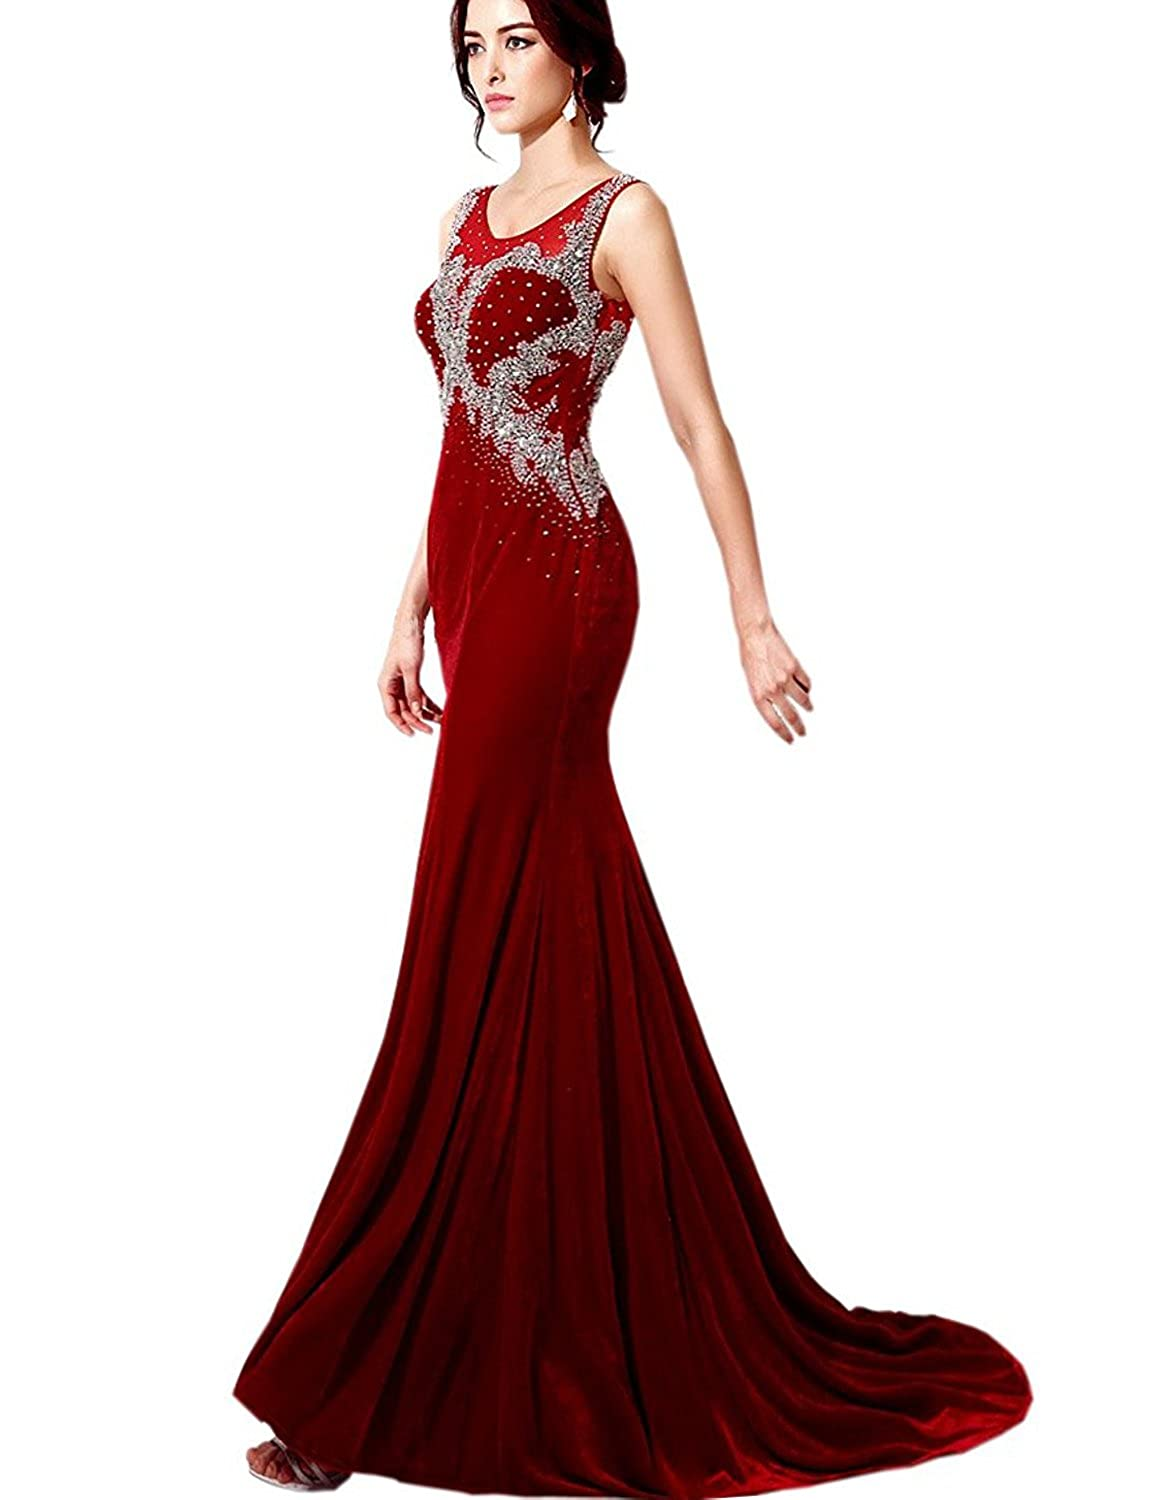 Belle House Mermaid Velvet Formal Evening Dress Celebrity Gown at Amazon Womens Clothing store: